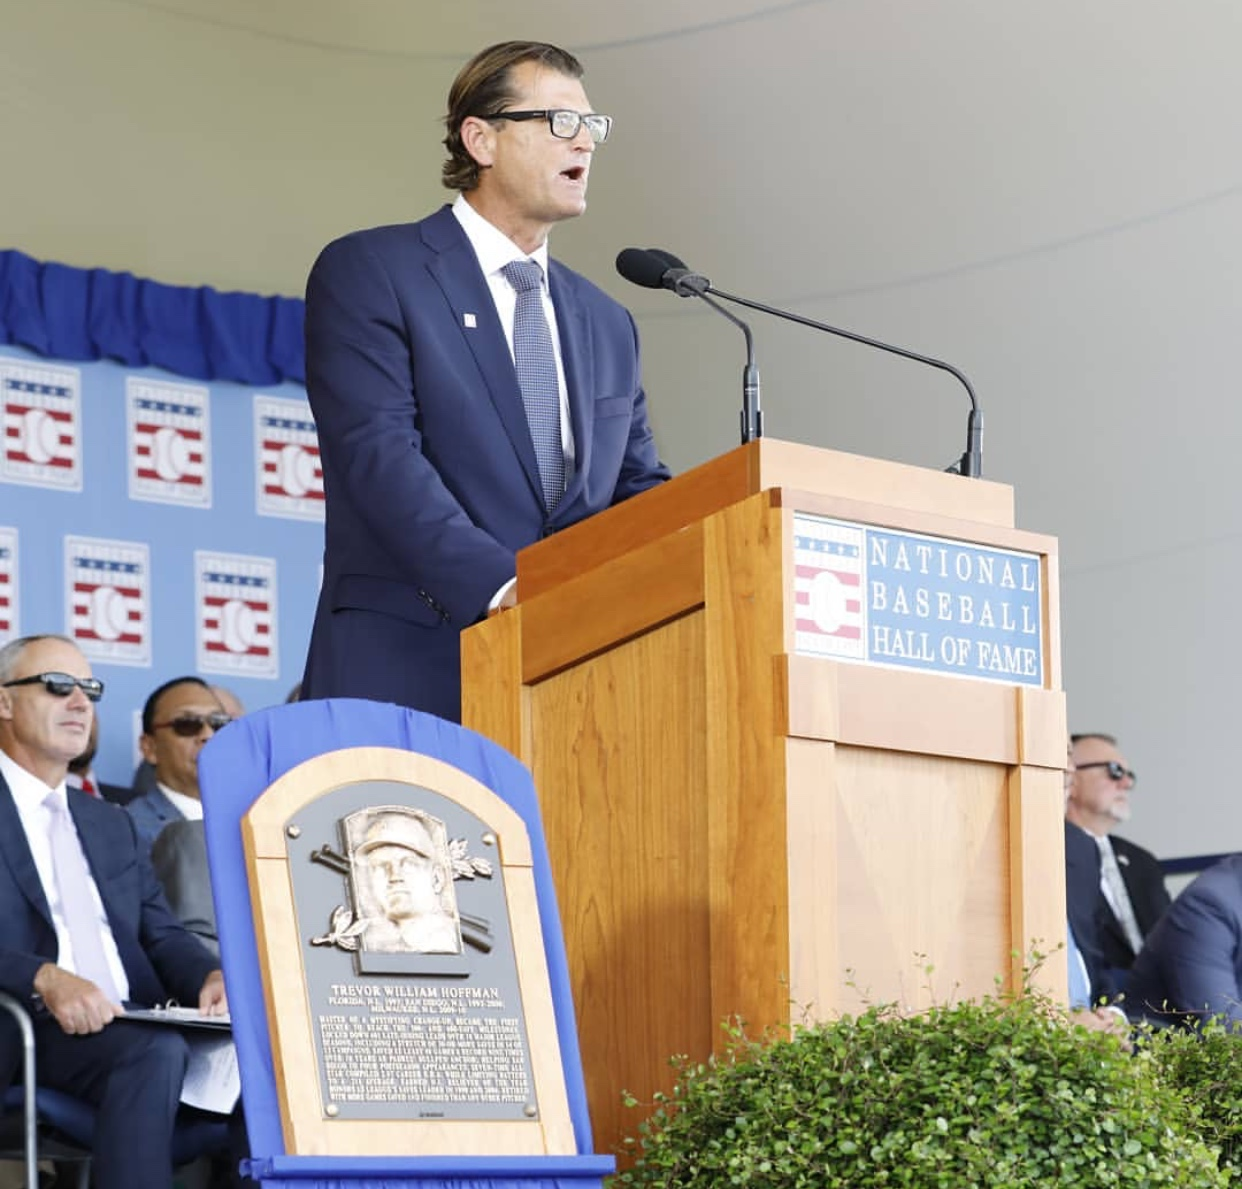 Trevor Hoffman gives much anticipated Hall of Fame speech in Cooperstown, NY with 53,000 fans in attendance.